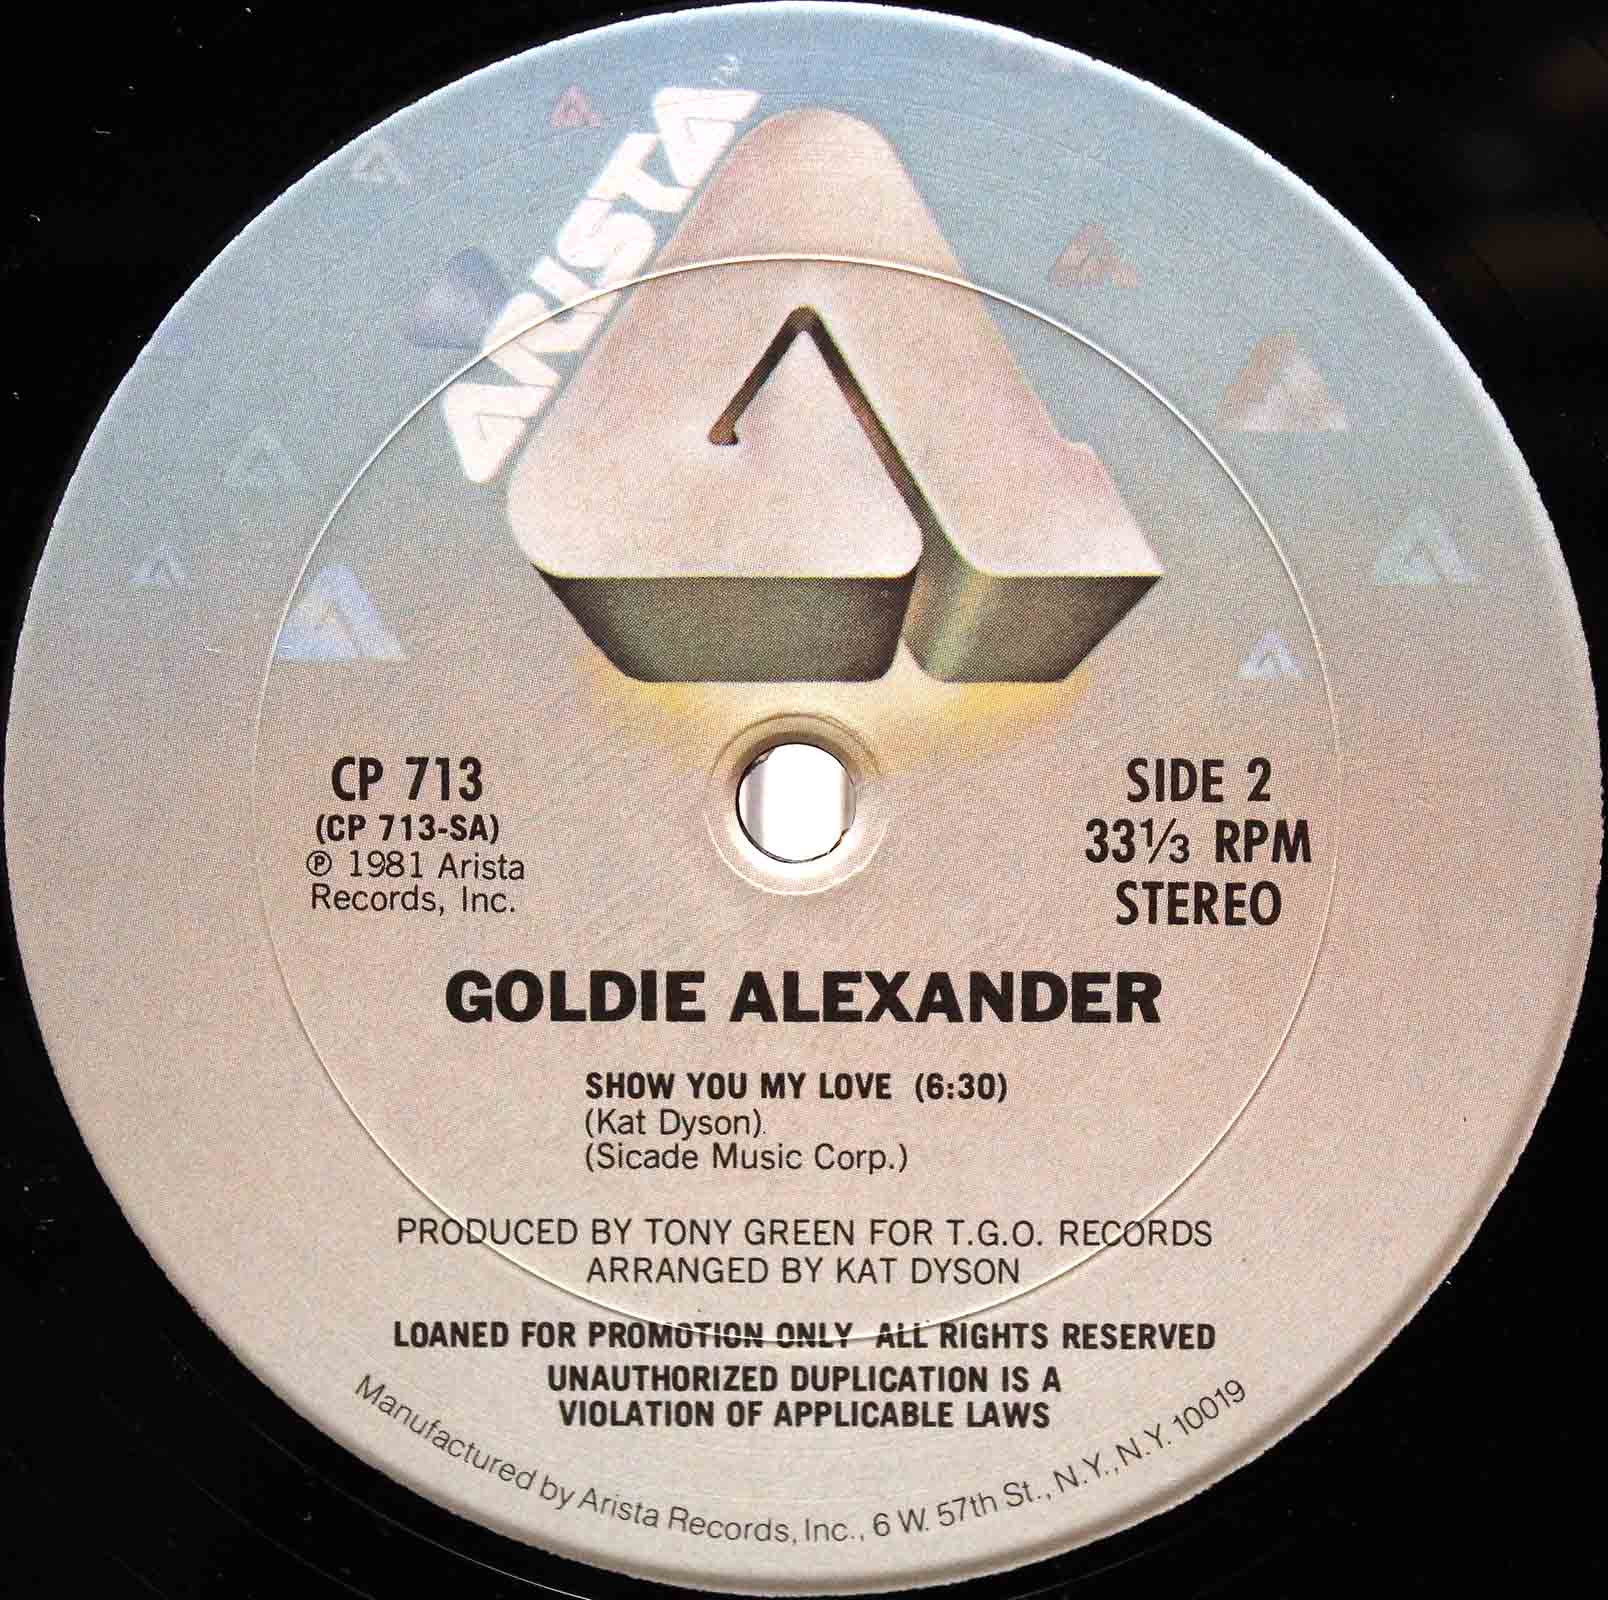 Goldie Alexander ‎- show you my love 04